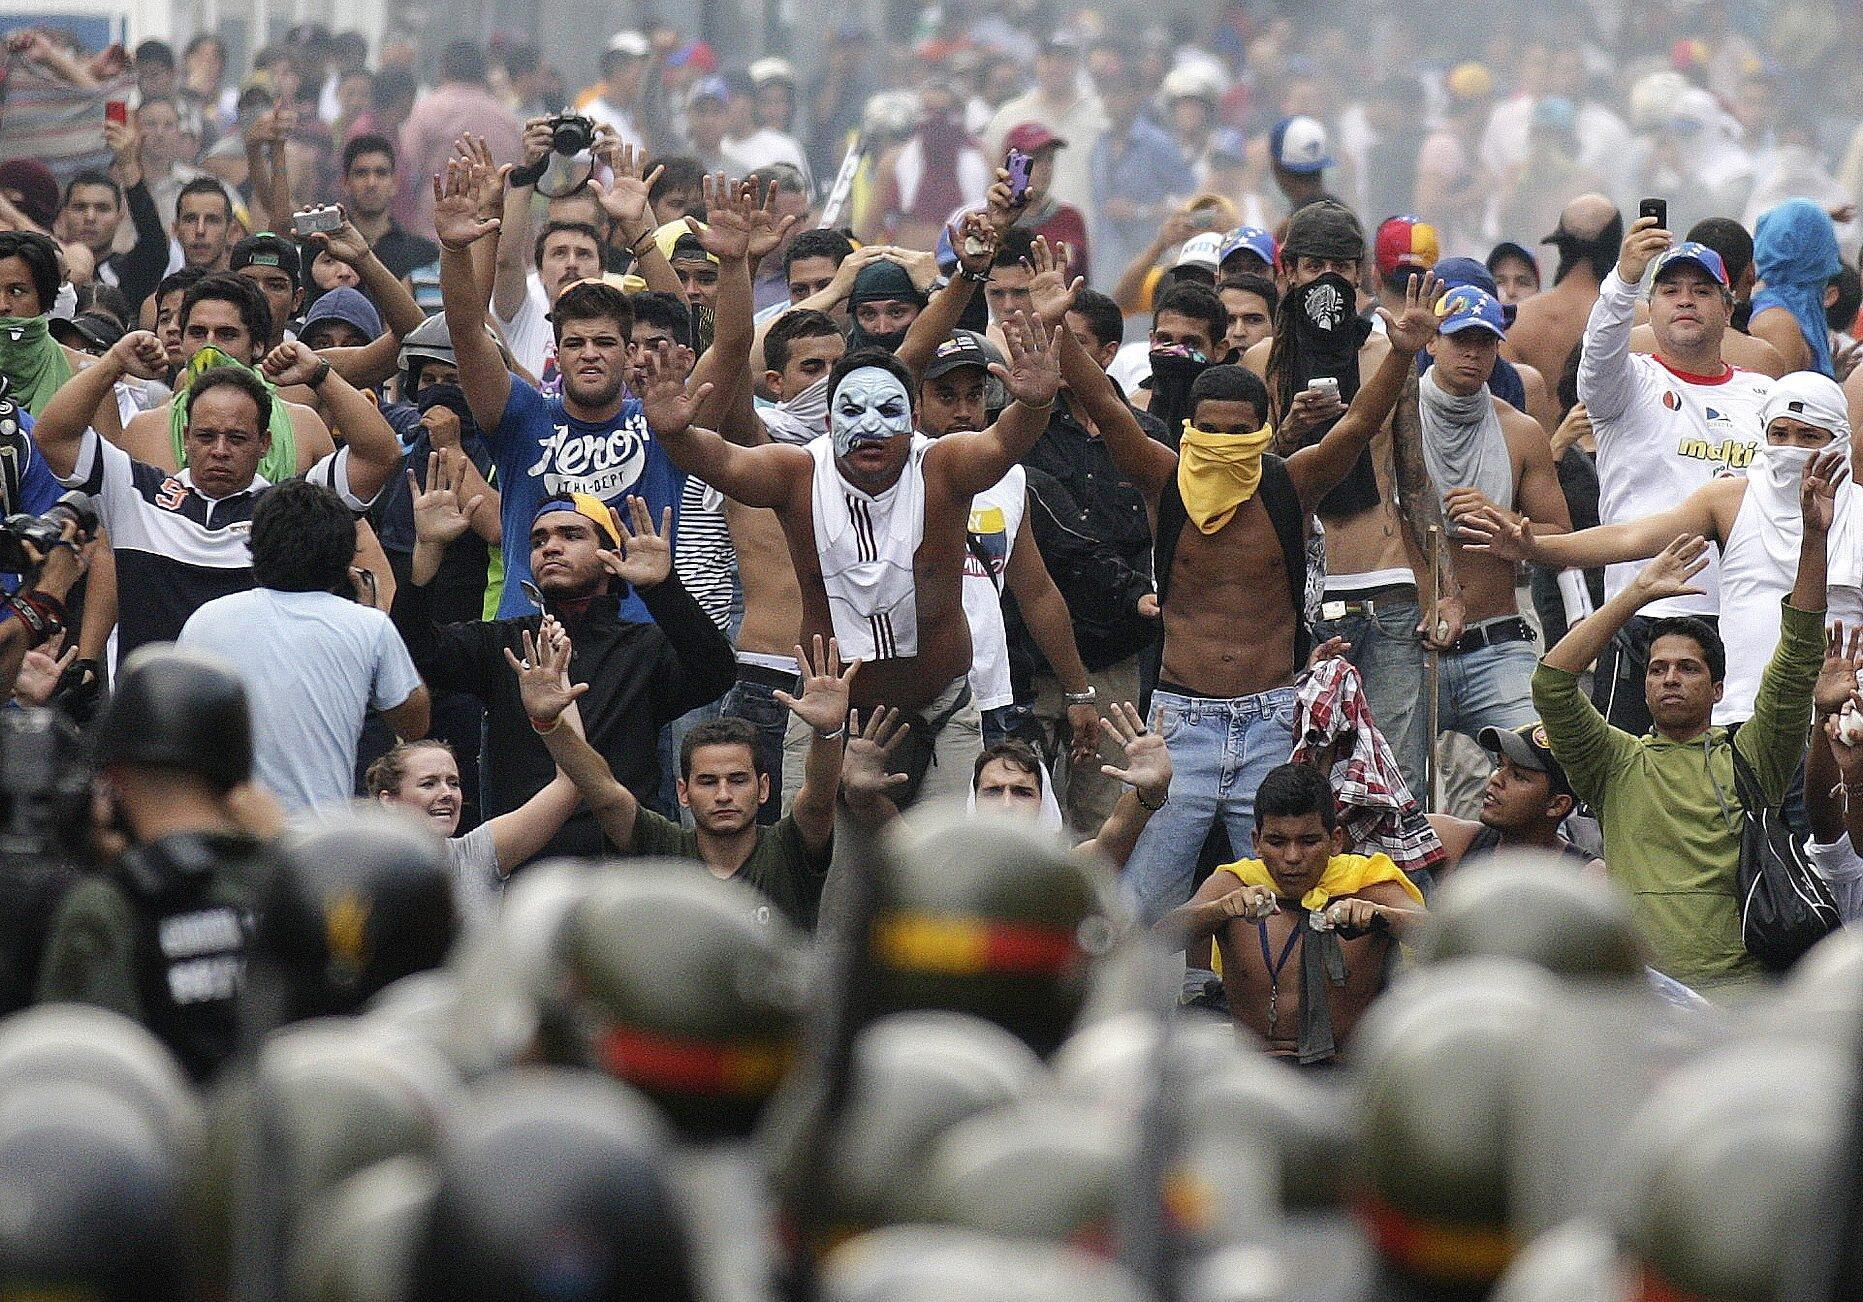 Supporters of opposition leader Henrique Capriles face off against riot police as they demonstrated for a recount of the votes in Sunday's election, in Caracas